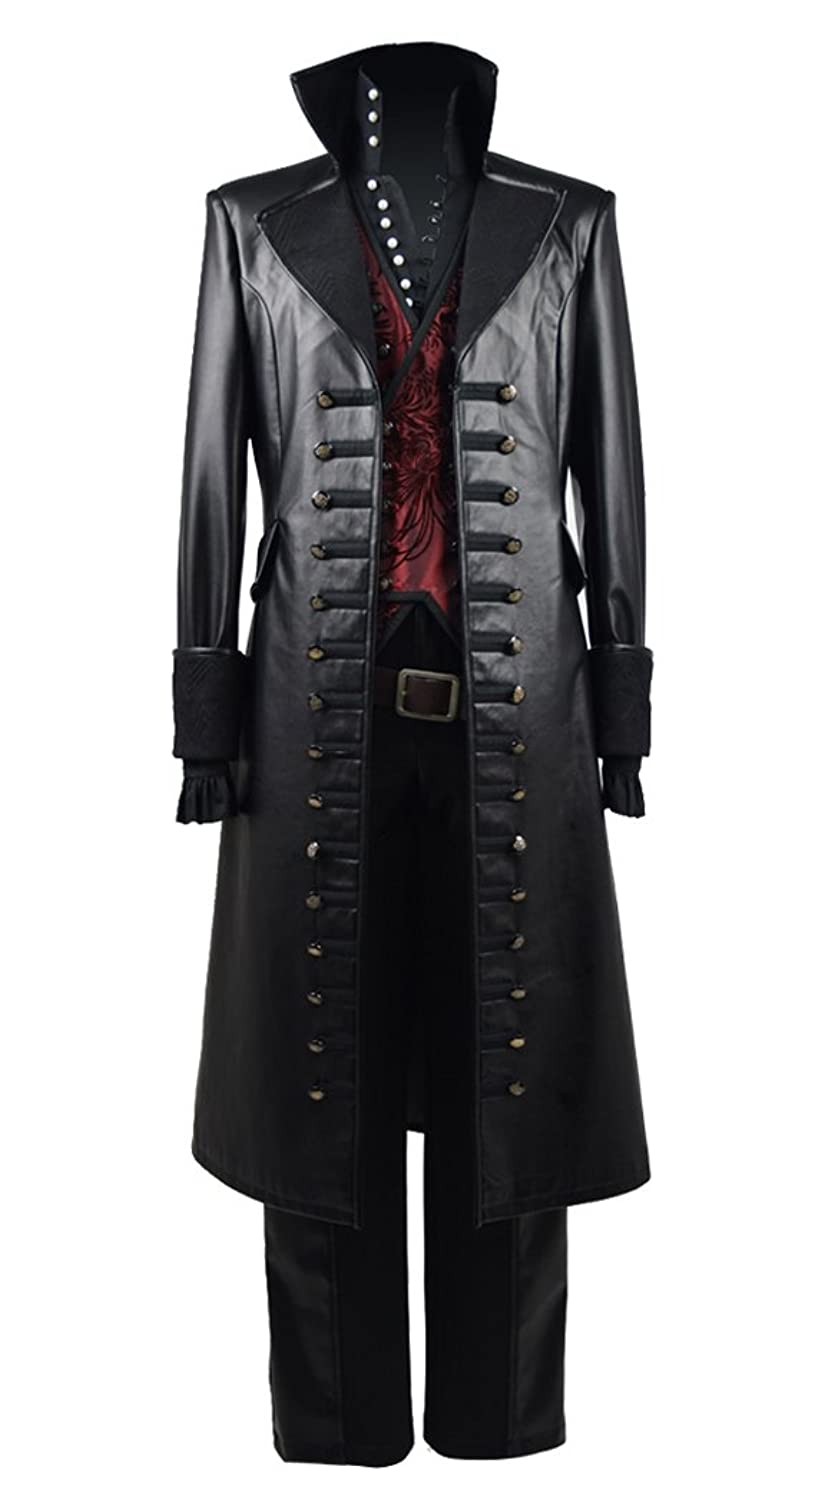 Captain Hook Red Vest Pirate Costume Once Upon a Time TV Series - DeluxeAdultCostumes.com